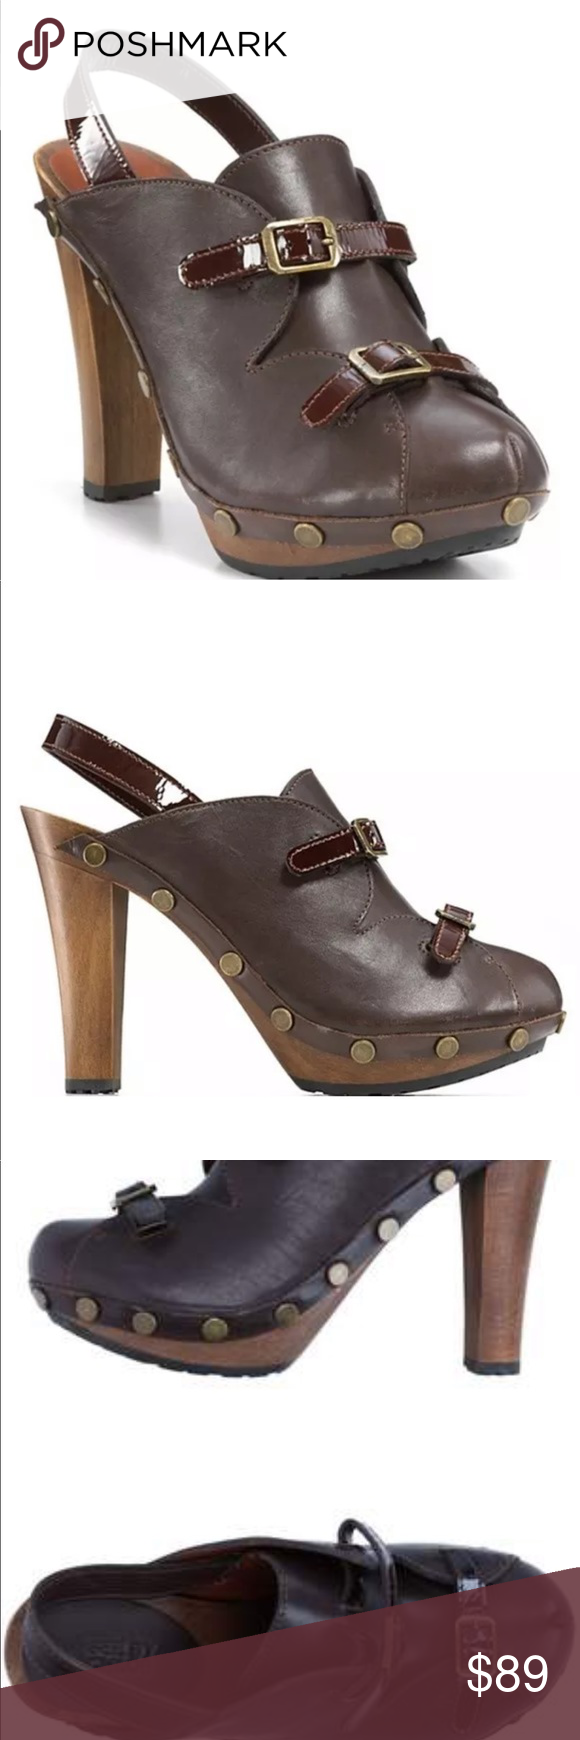 See by Chloe clogs Mules Heels Slingback See by Chloe brown Leather Slingback Heels   Excellent like new condition  Size 39 See By Chloe Shoes Ankle Boots & Booties #seebychloe